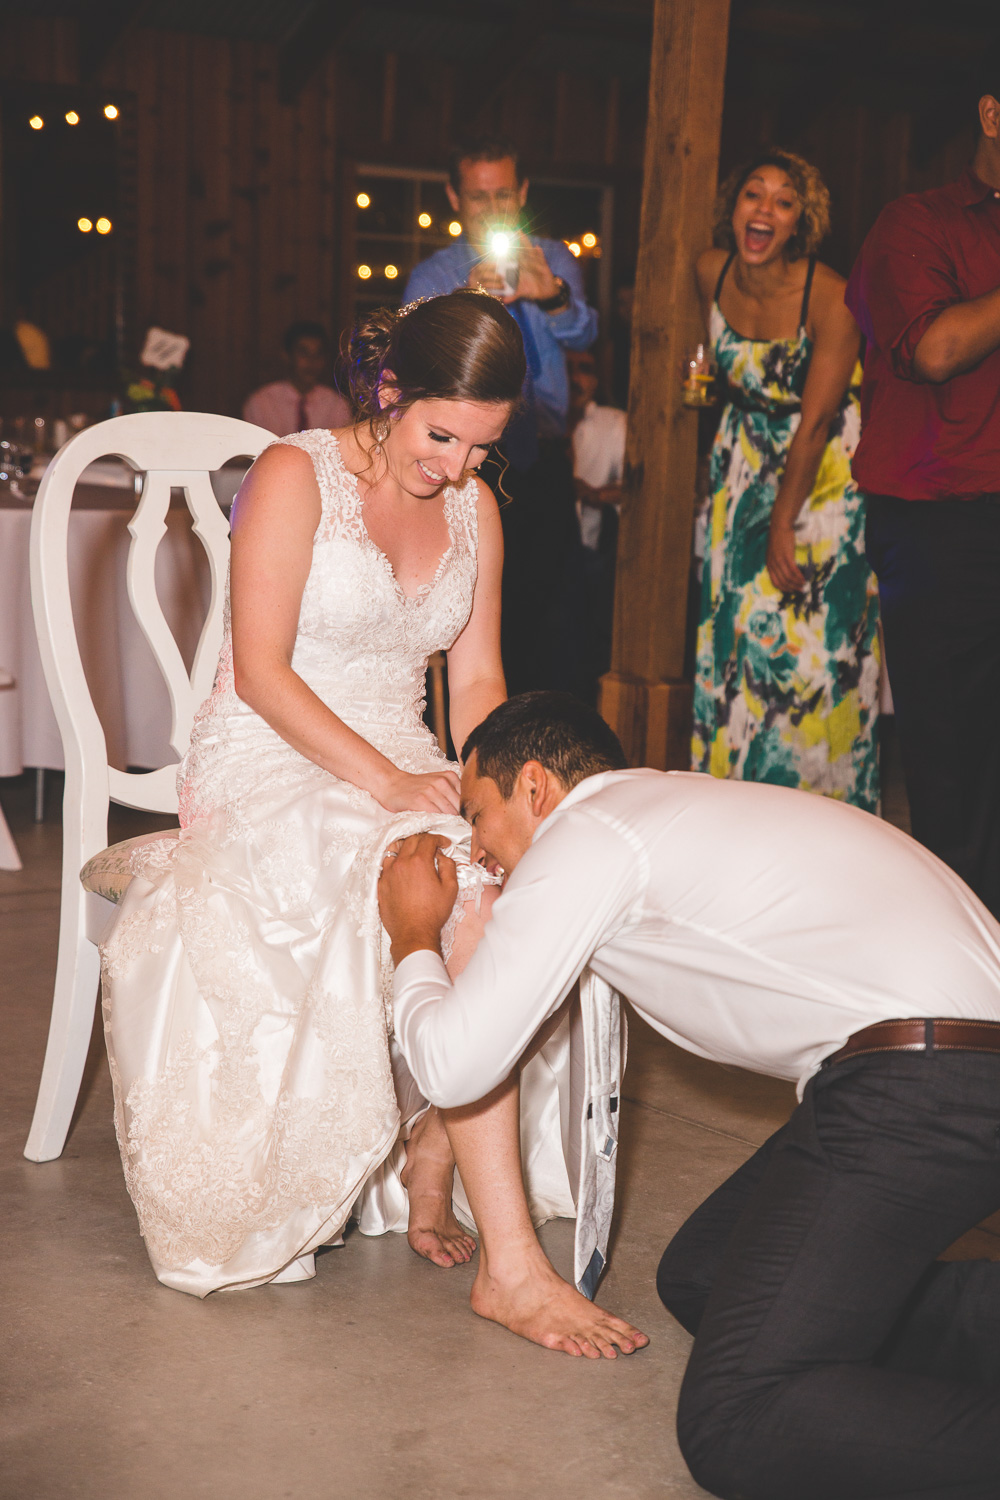 groom removing garter with his teeth